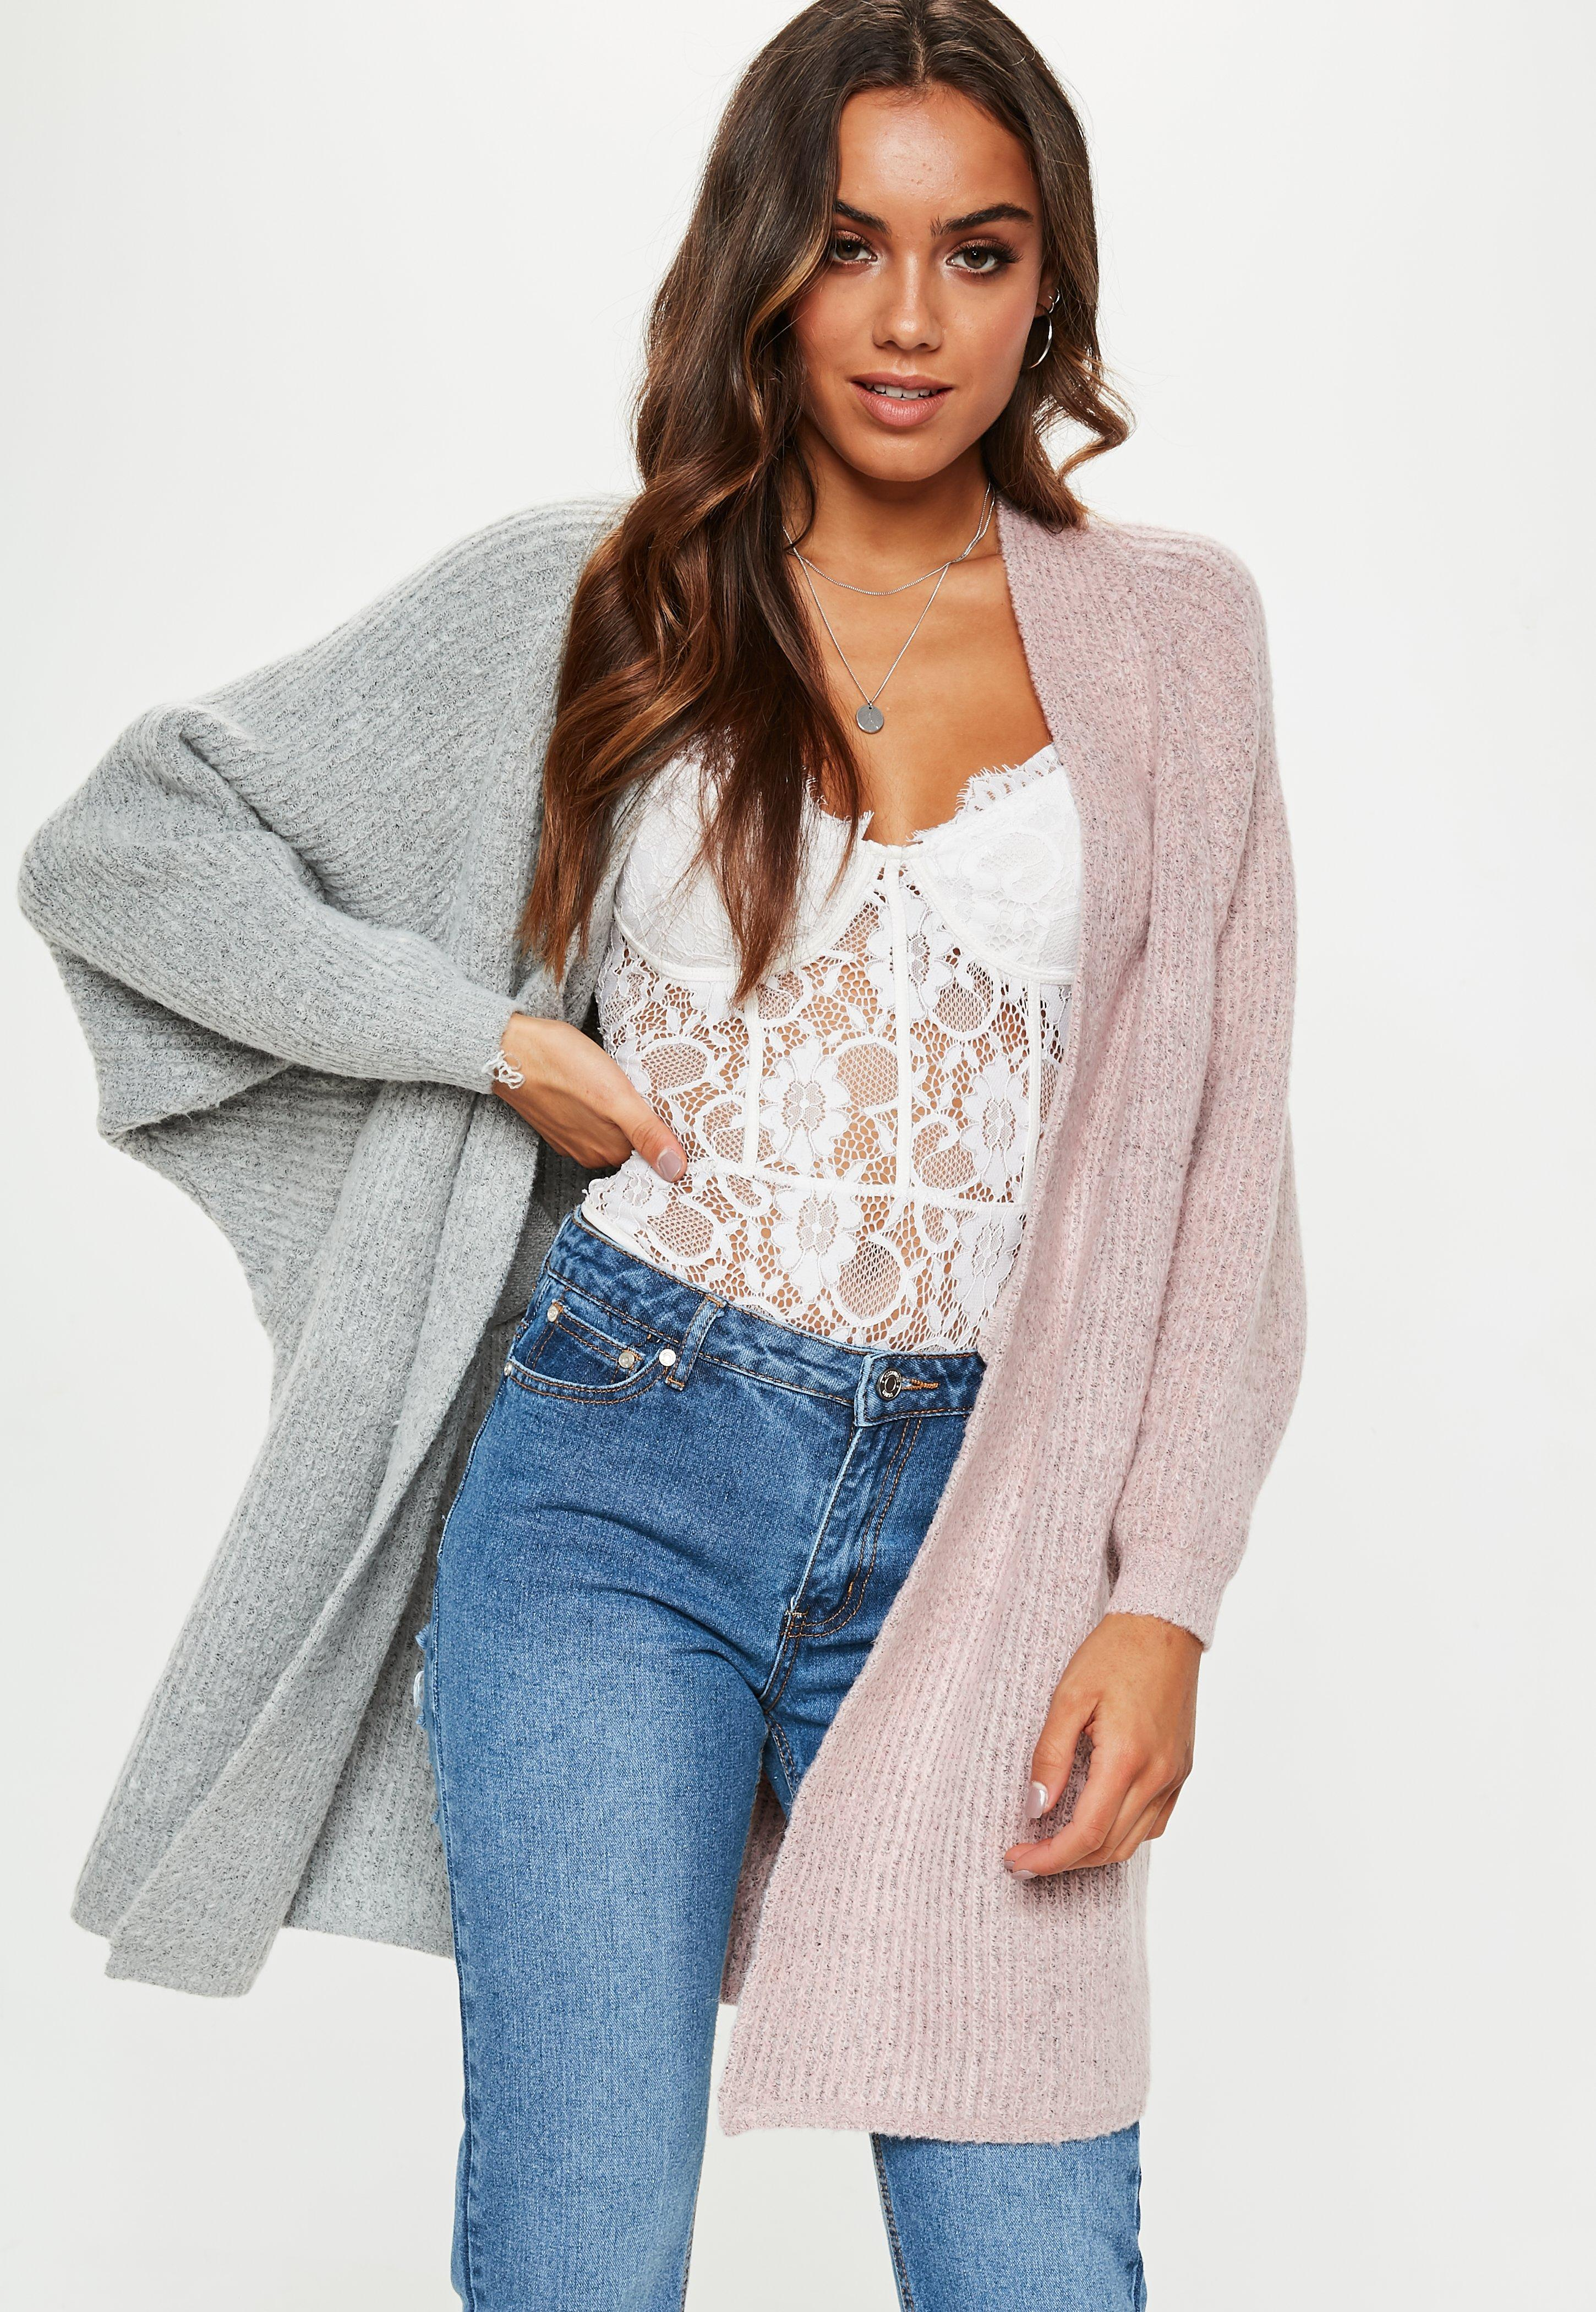 a97576935c57f5 Lyst - Missguided Pink grey Oversized Batwing Longline Knitted ...